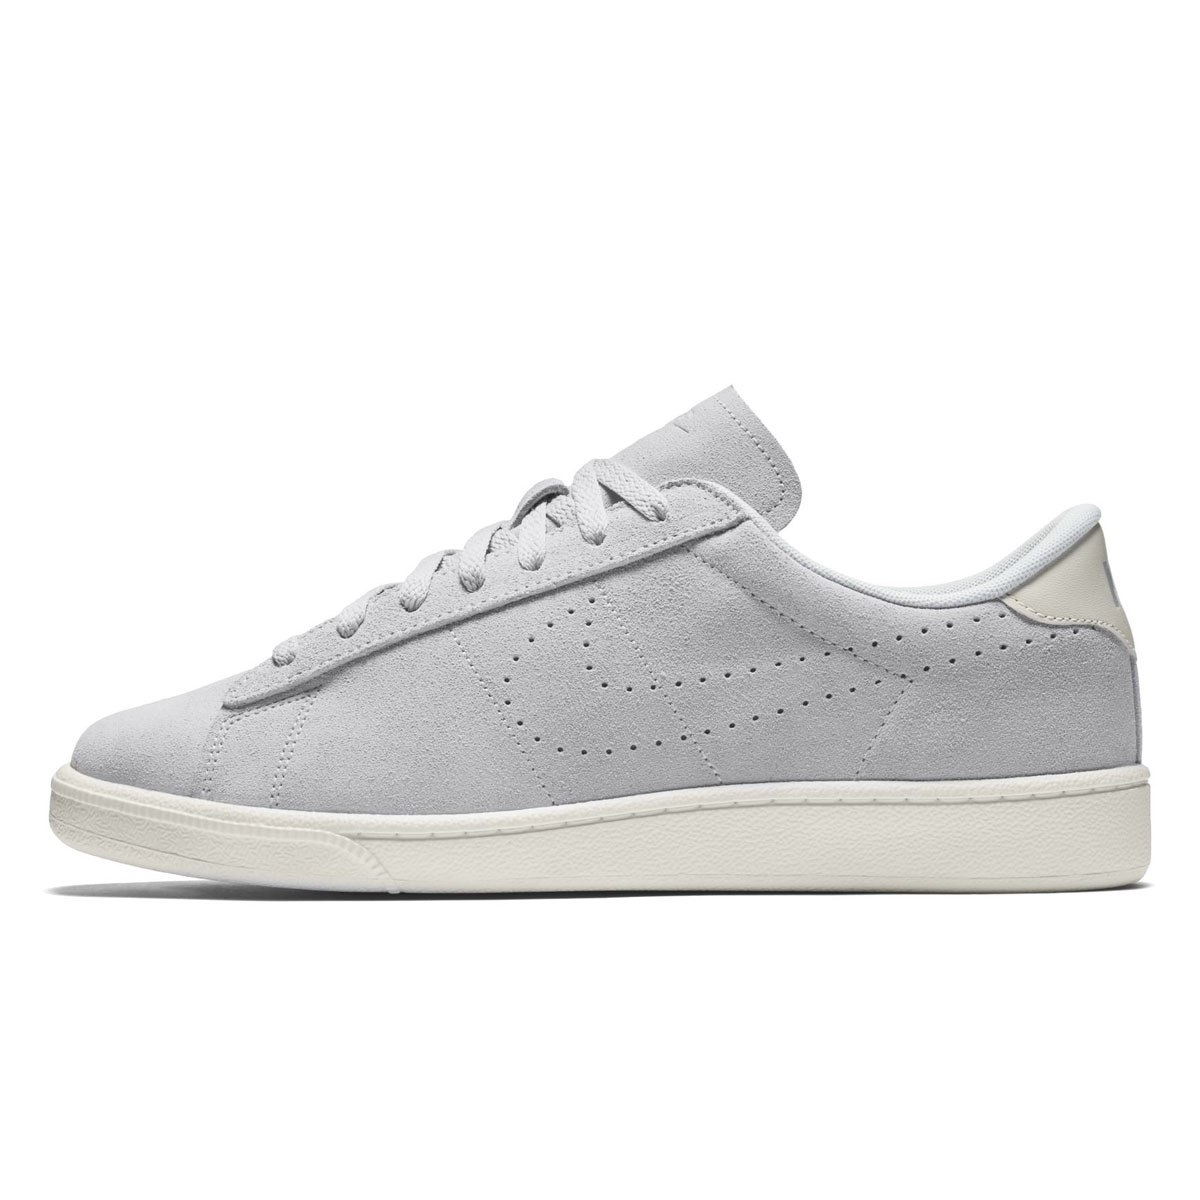 best service c8b59 3f5a1 Get Quotations · Nike authentic nike men s tennis classic classic casual  shoes 829351-001-400